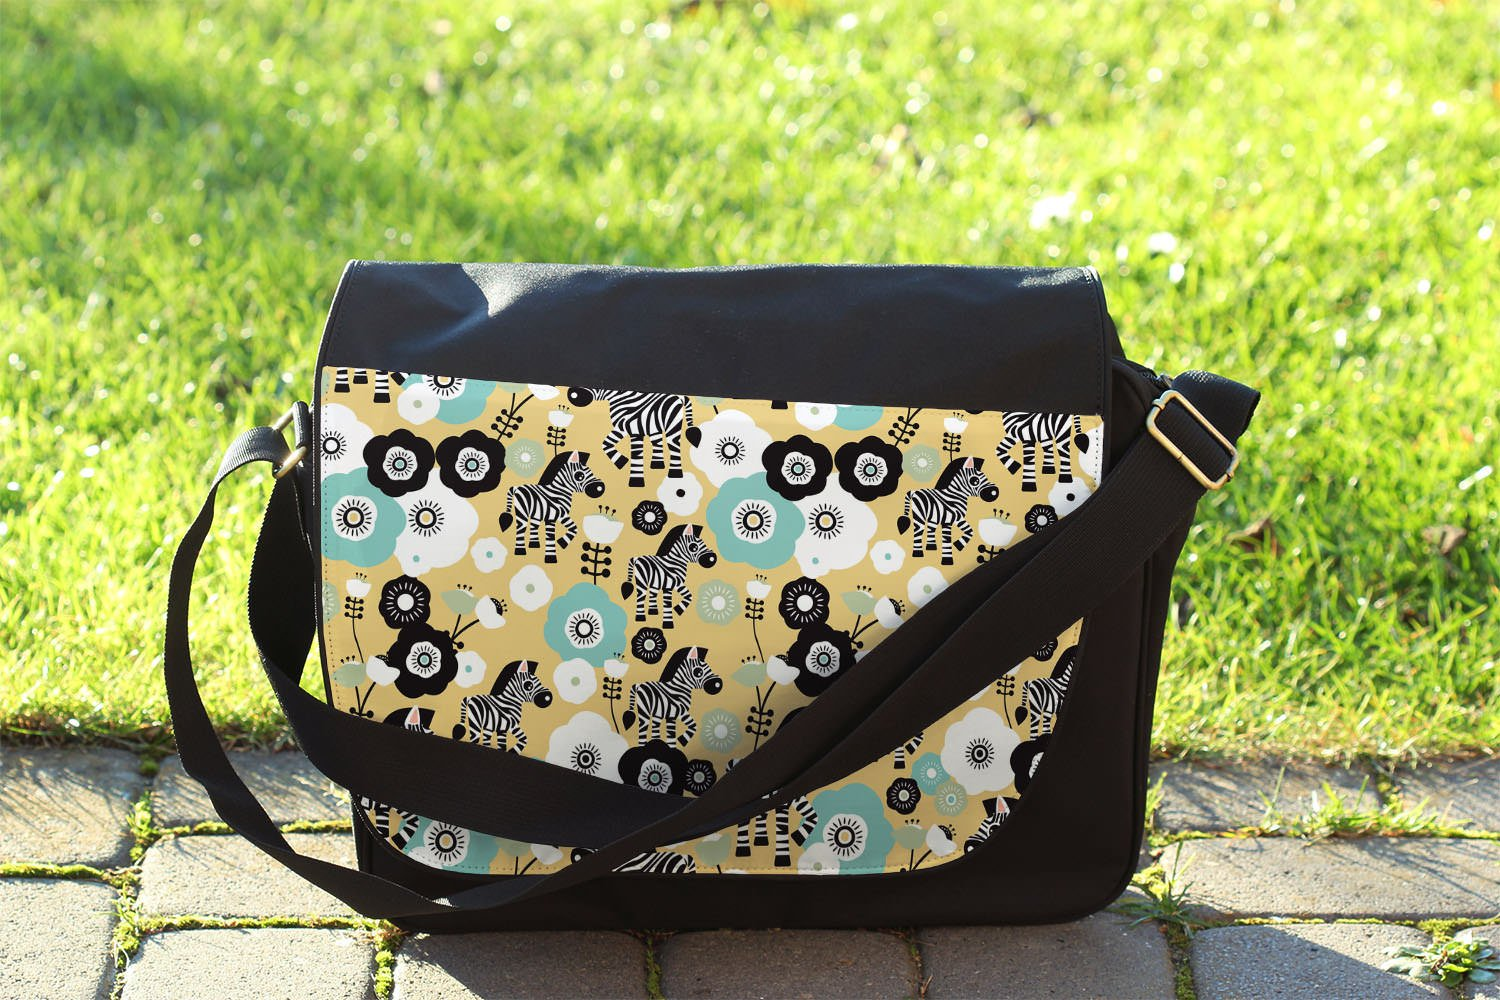 Zebra Blossoms Yellow - One Size Messenger Bag - Messenger Bag by Queen of Cases (Image #3)